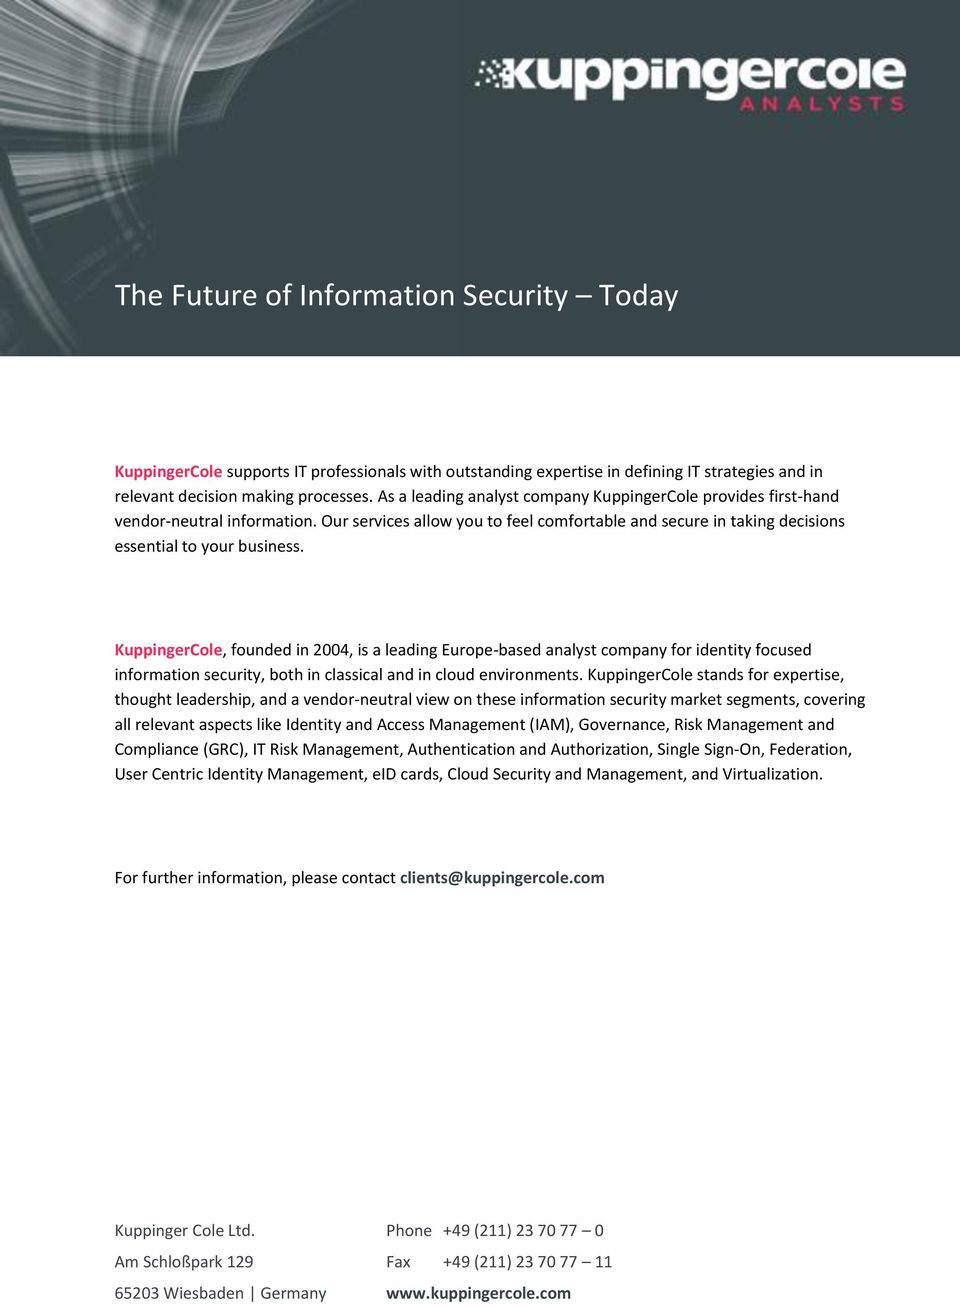 KuppingerCole, founded in 2004, is a leading Europe-based analyst company for identity focused information security, both in classical and in cloud environments.